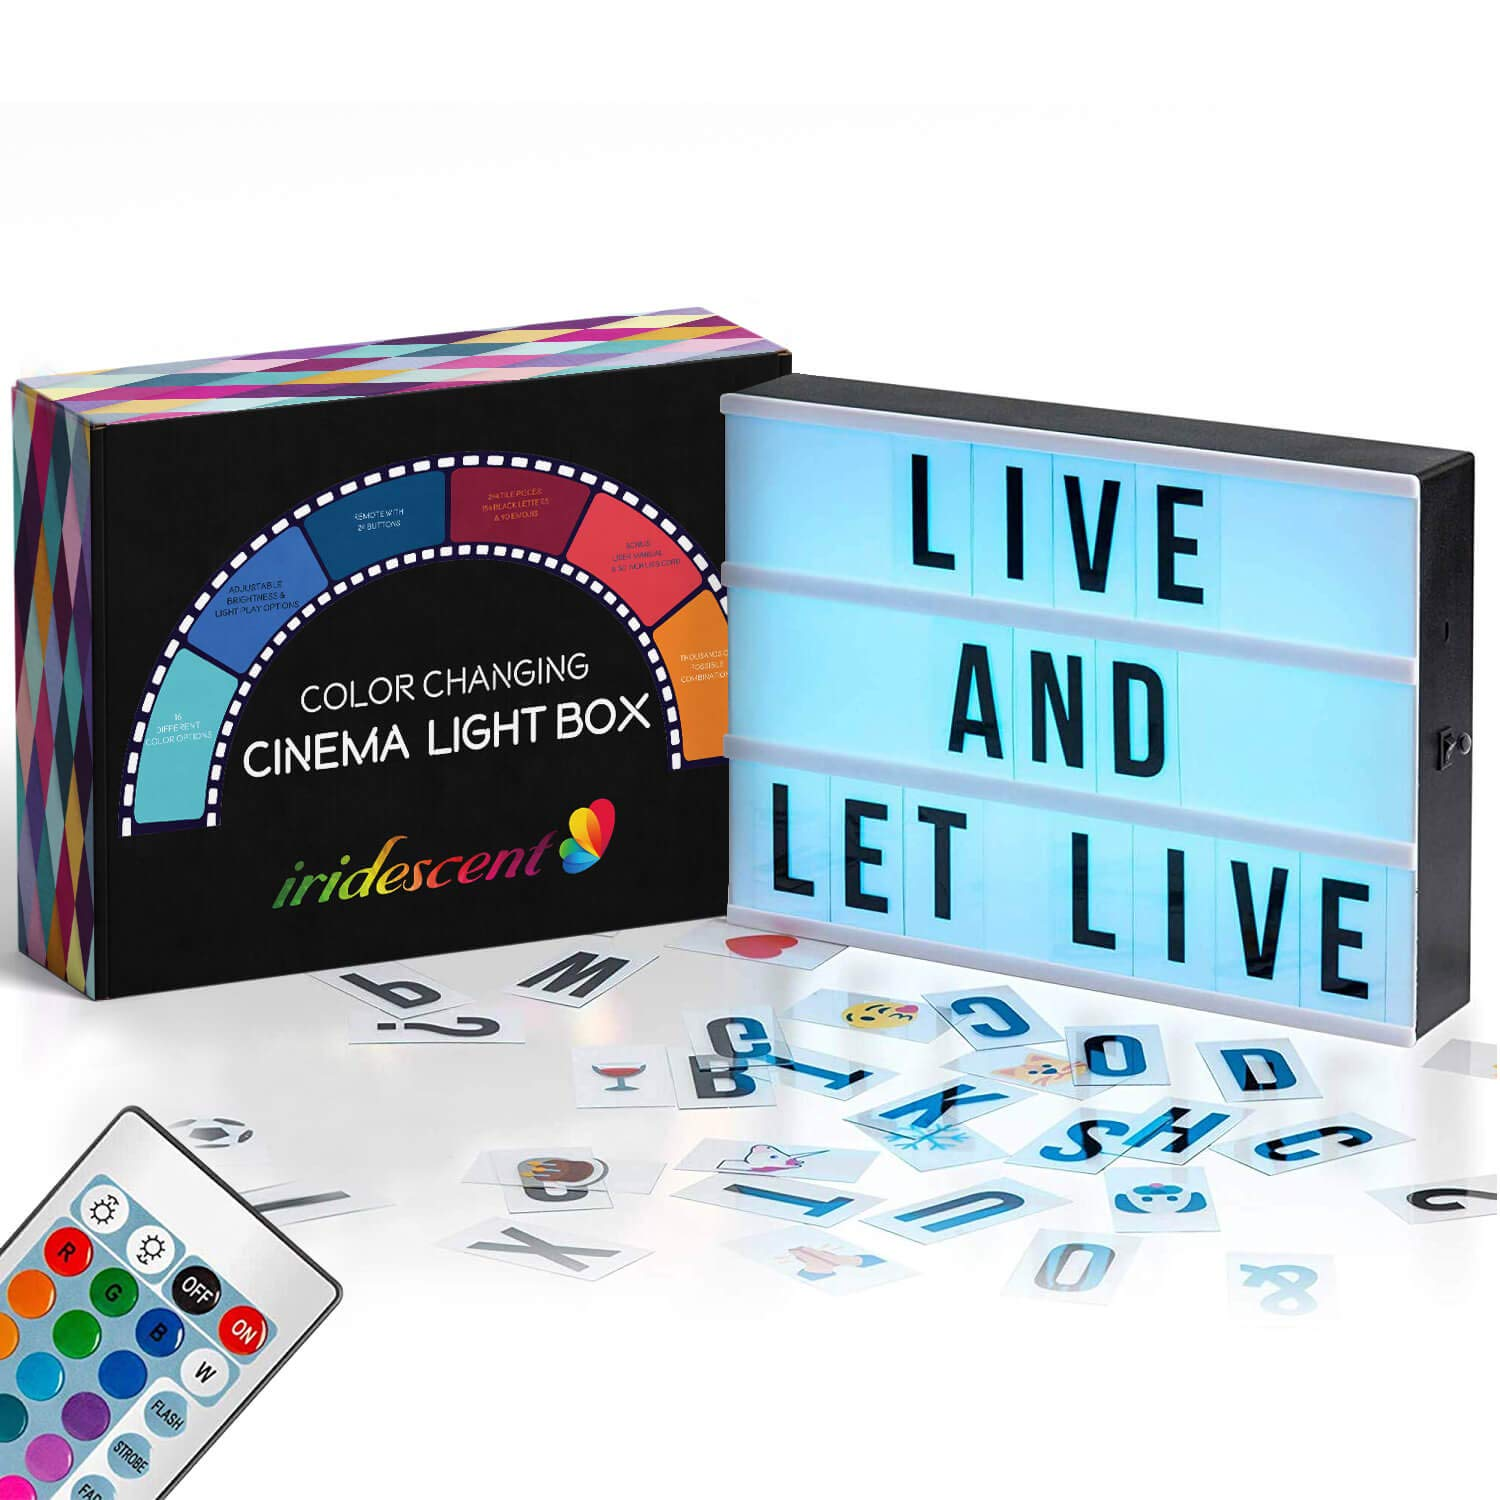 Color Changing Cinema Light Box with Letters - 244 Total Letters, Numbers & Emojis | 16 Colors Remote-controlled PREMIUM Cinematic Marquee Sign Light Box | NEW for 2019! LED Light Up Letter Box Sign by Iridescent